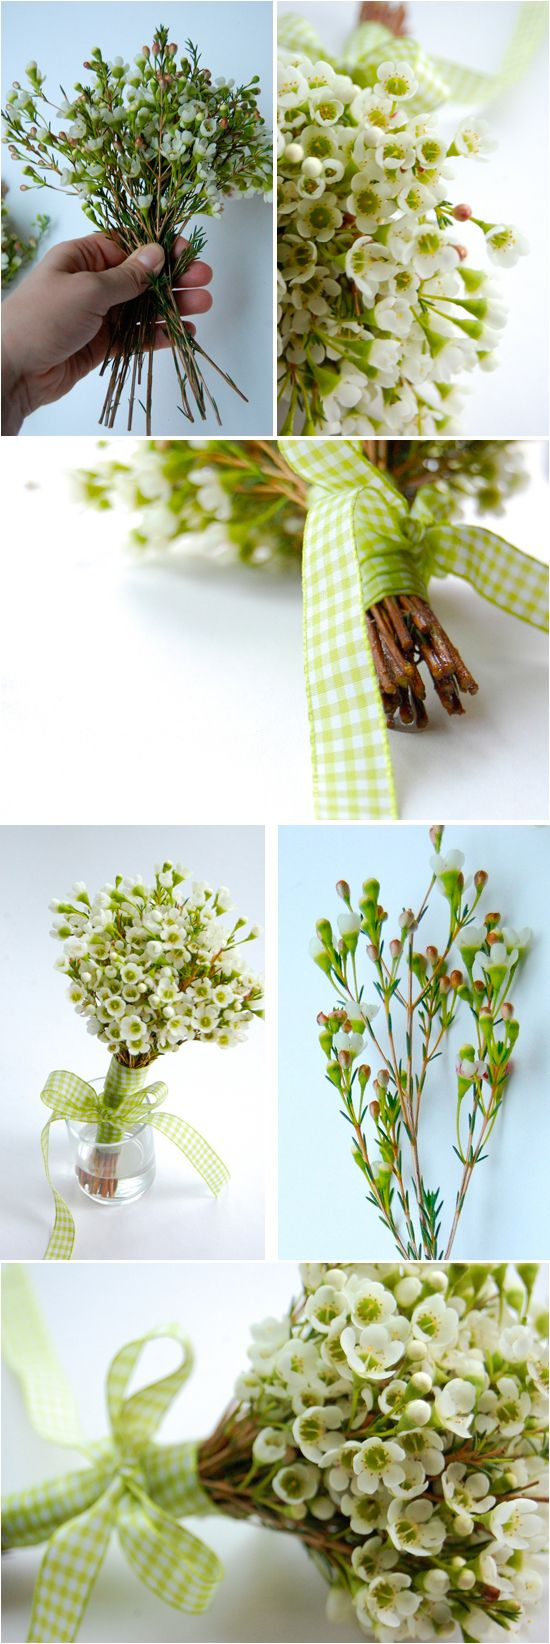 DIY: Waxflower Bouquet - possible alternative to baby's breath.  Apparently very common and easy to get.